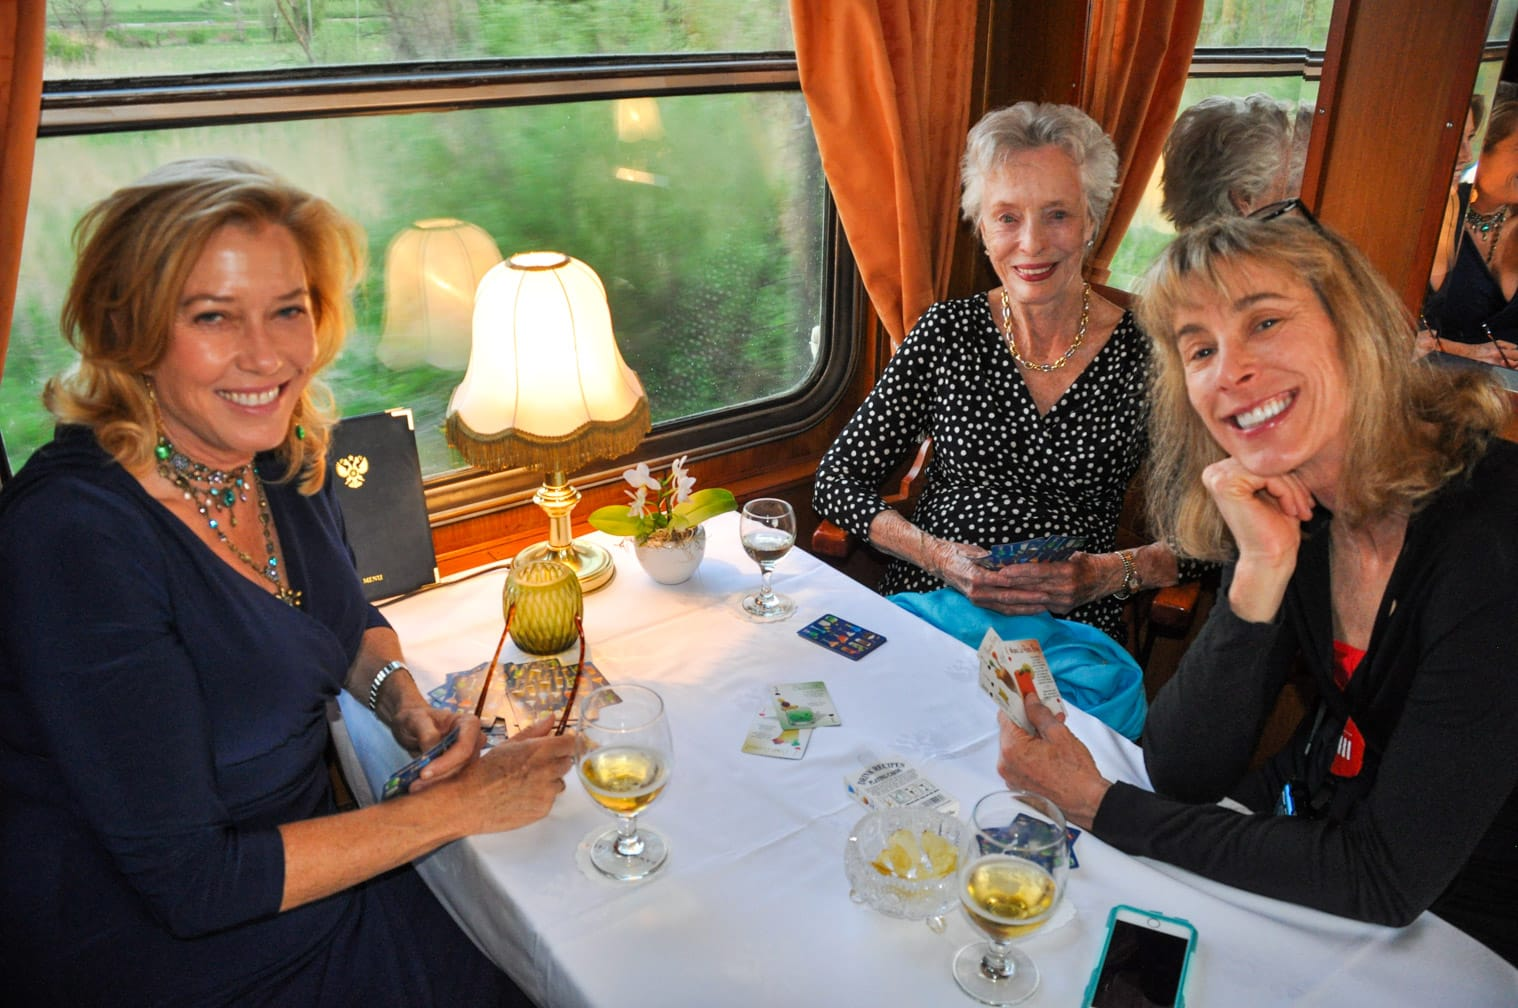 Three ladies sitting in the Golden Eagle Danube Express train